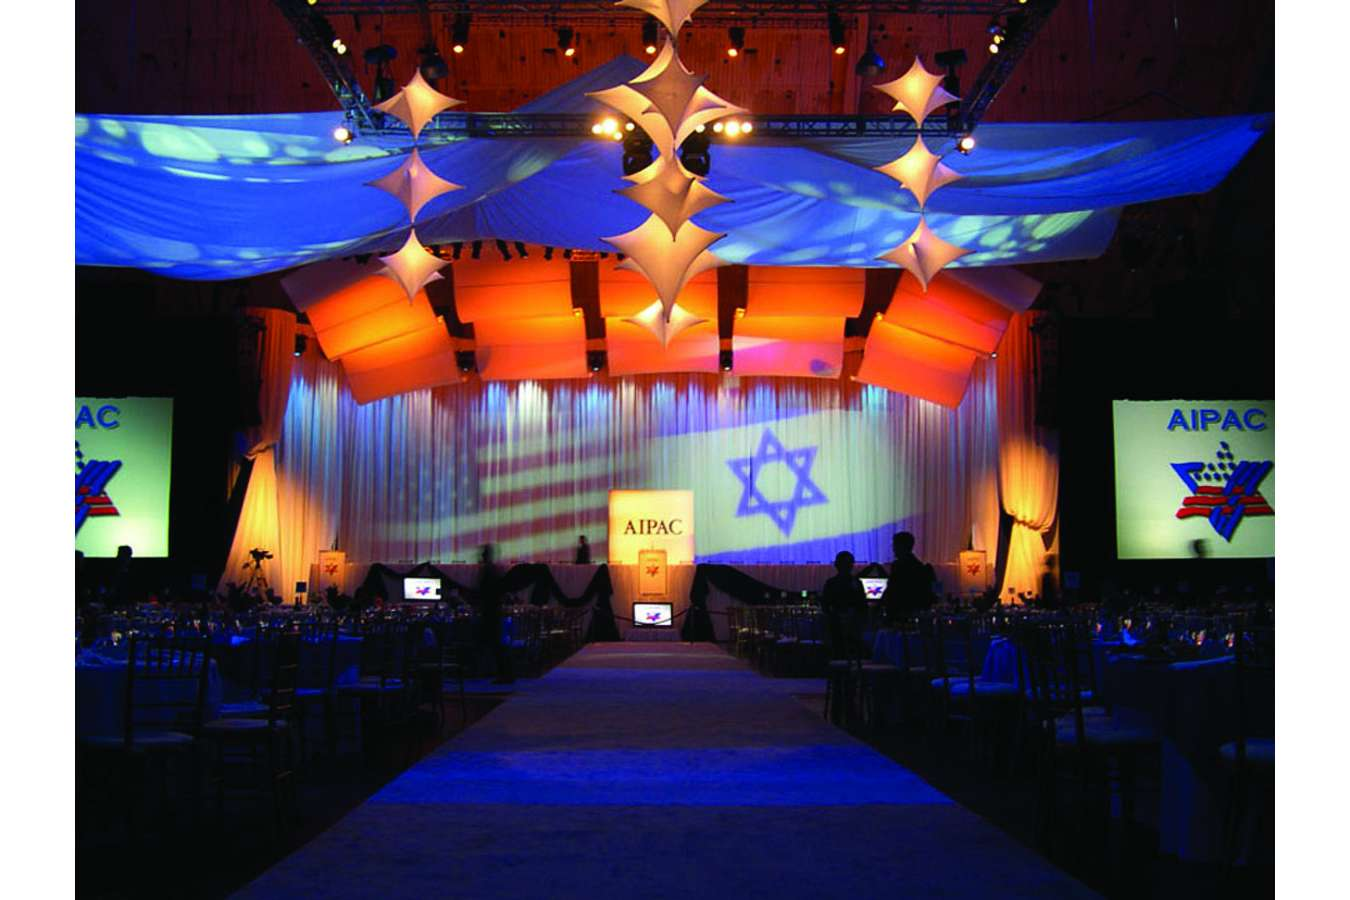 AIPA03 2a stage : The football-field sized DC Armory transformed for the AIPAC Event